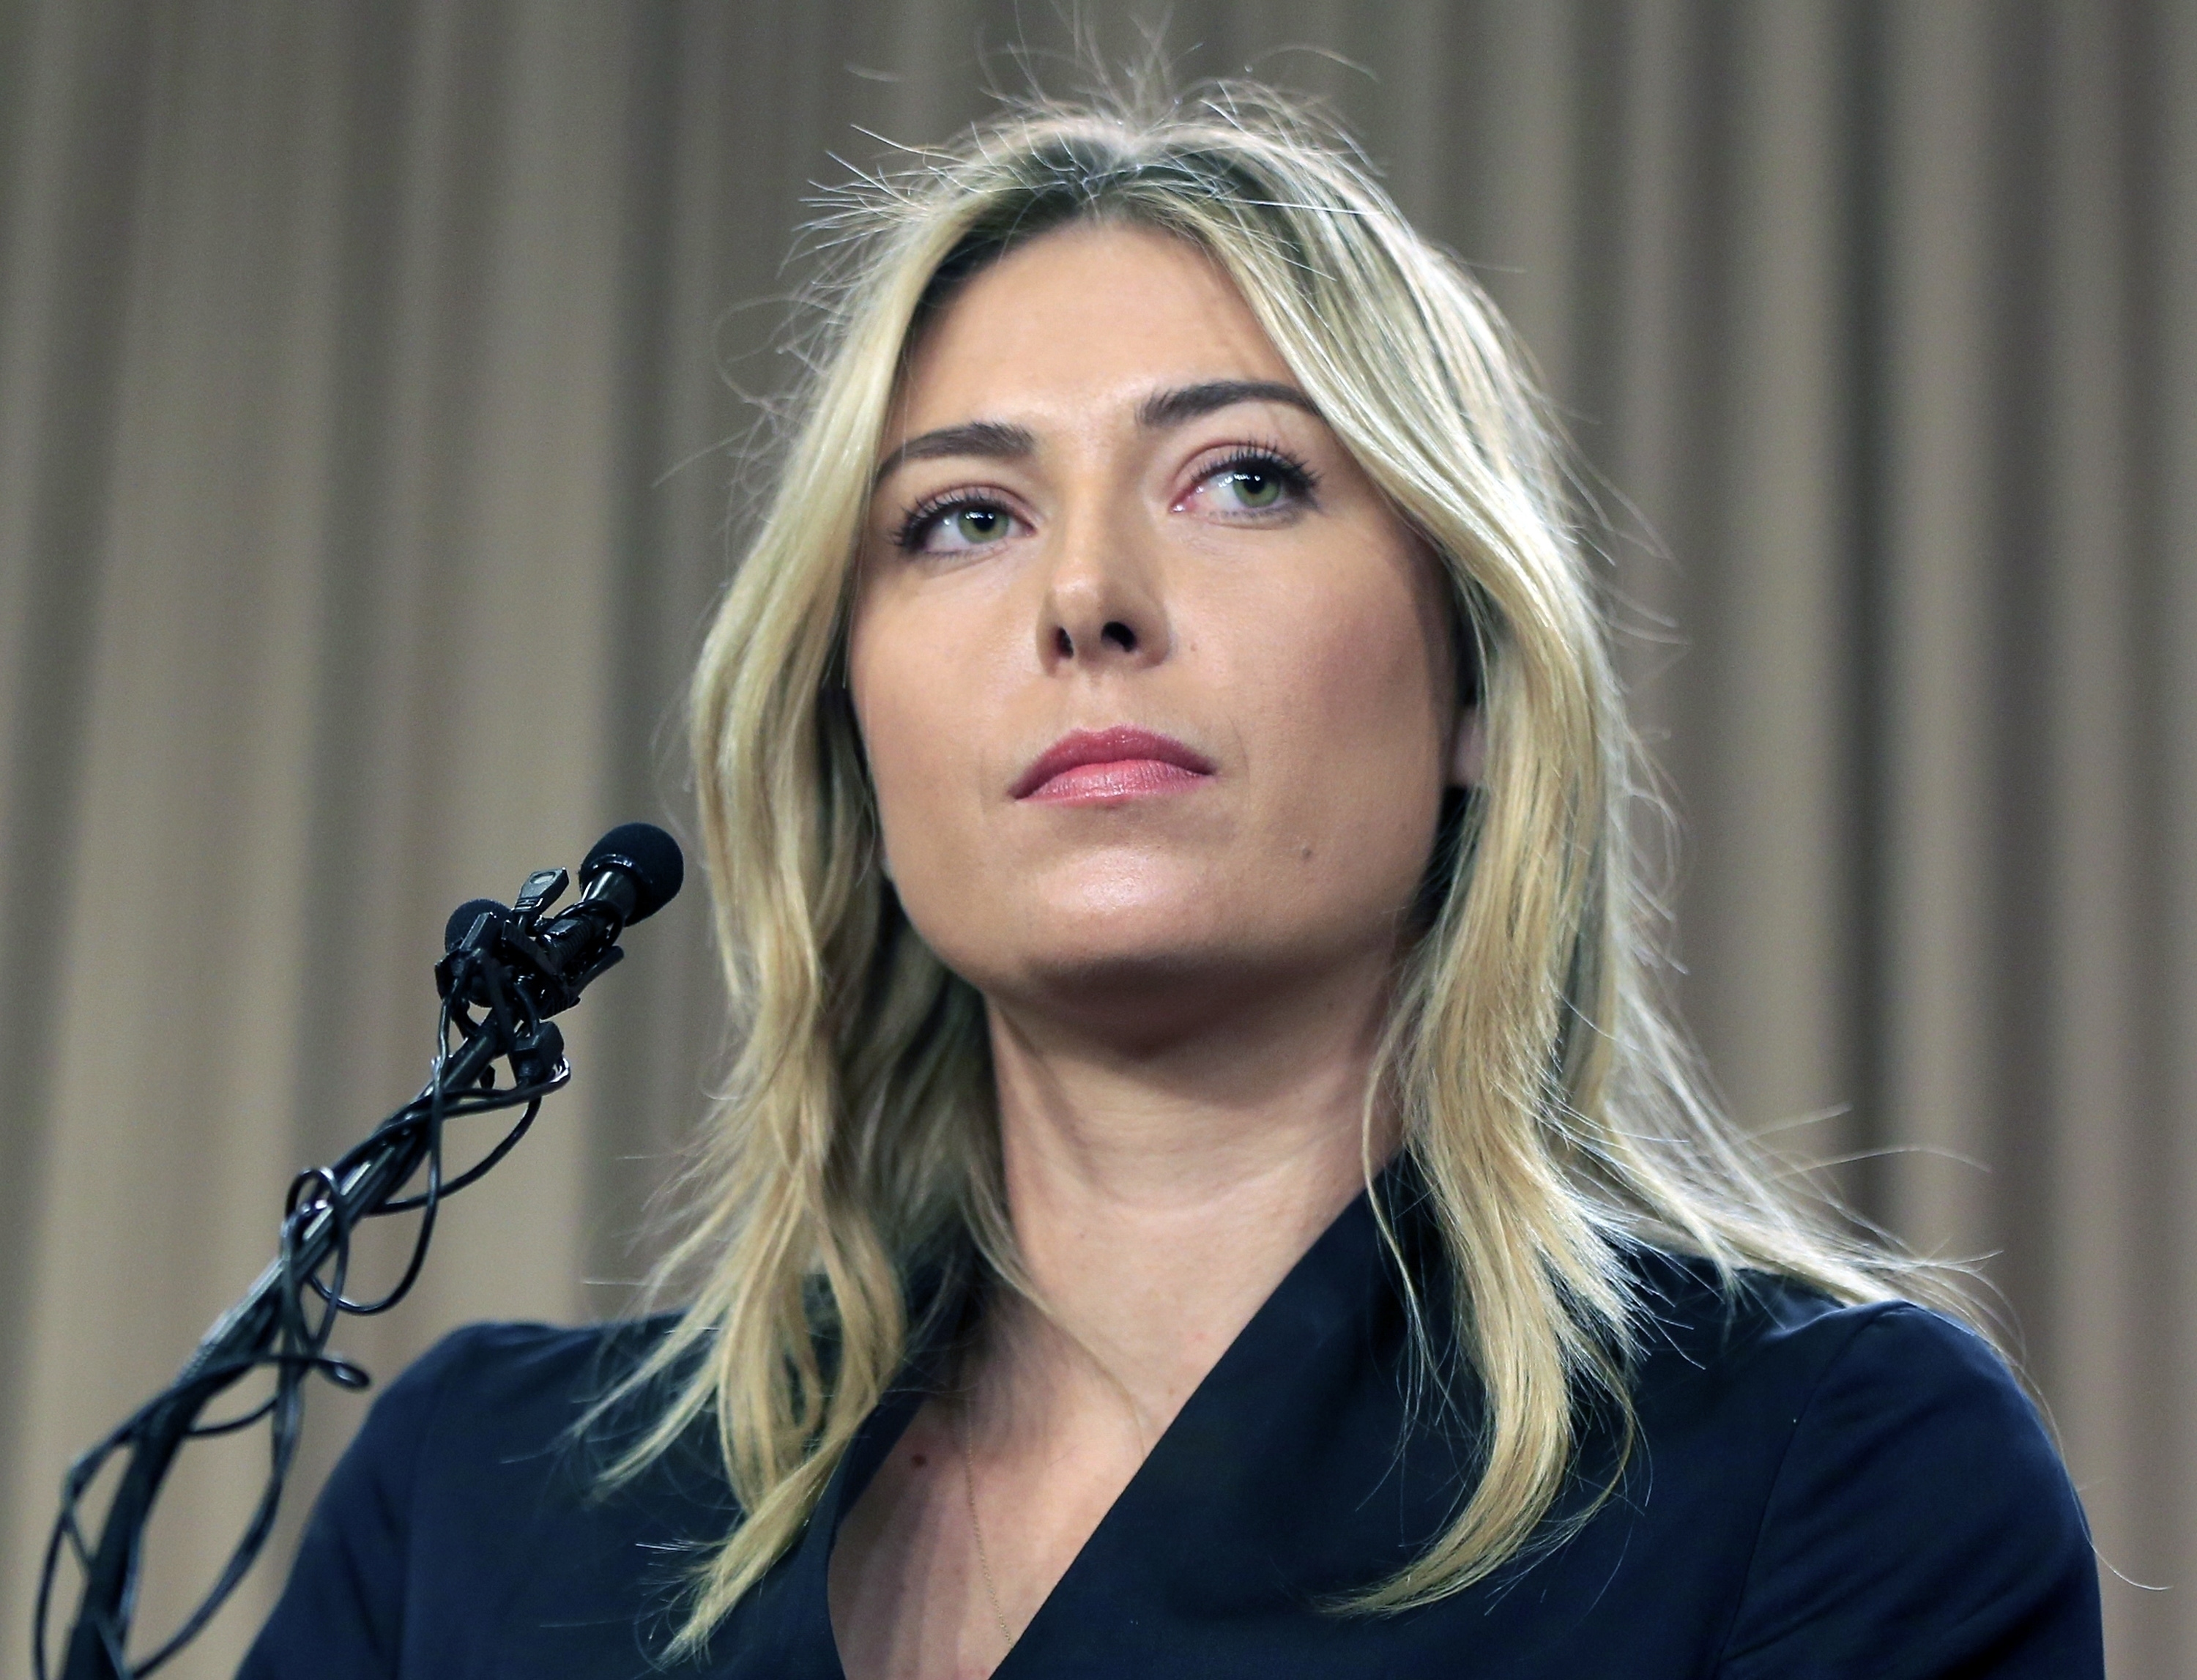 FILE - In this Monday March 7, 2016 file photo, tennis star Maria Sharapova speaks about her failed drug test at the Australia Open during a news conference in Los Angeles. A ruling by the Court of Arbitration for Sport said on Monday July 11, 2016 that M